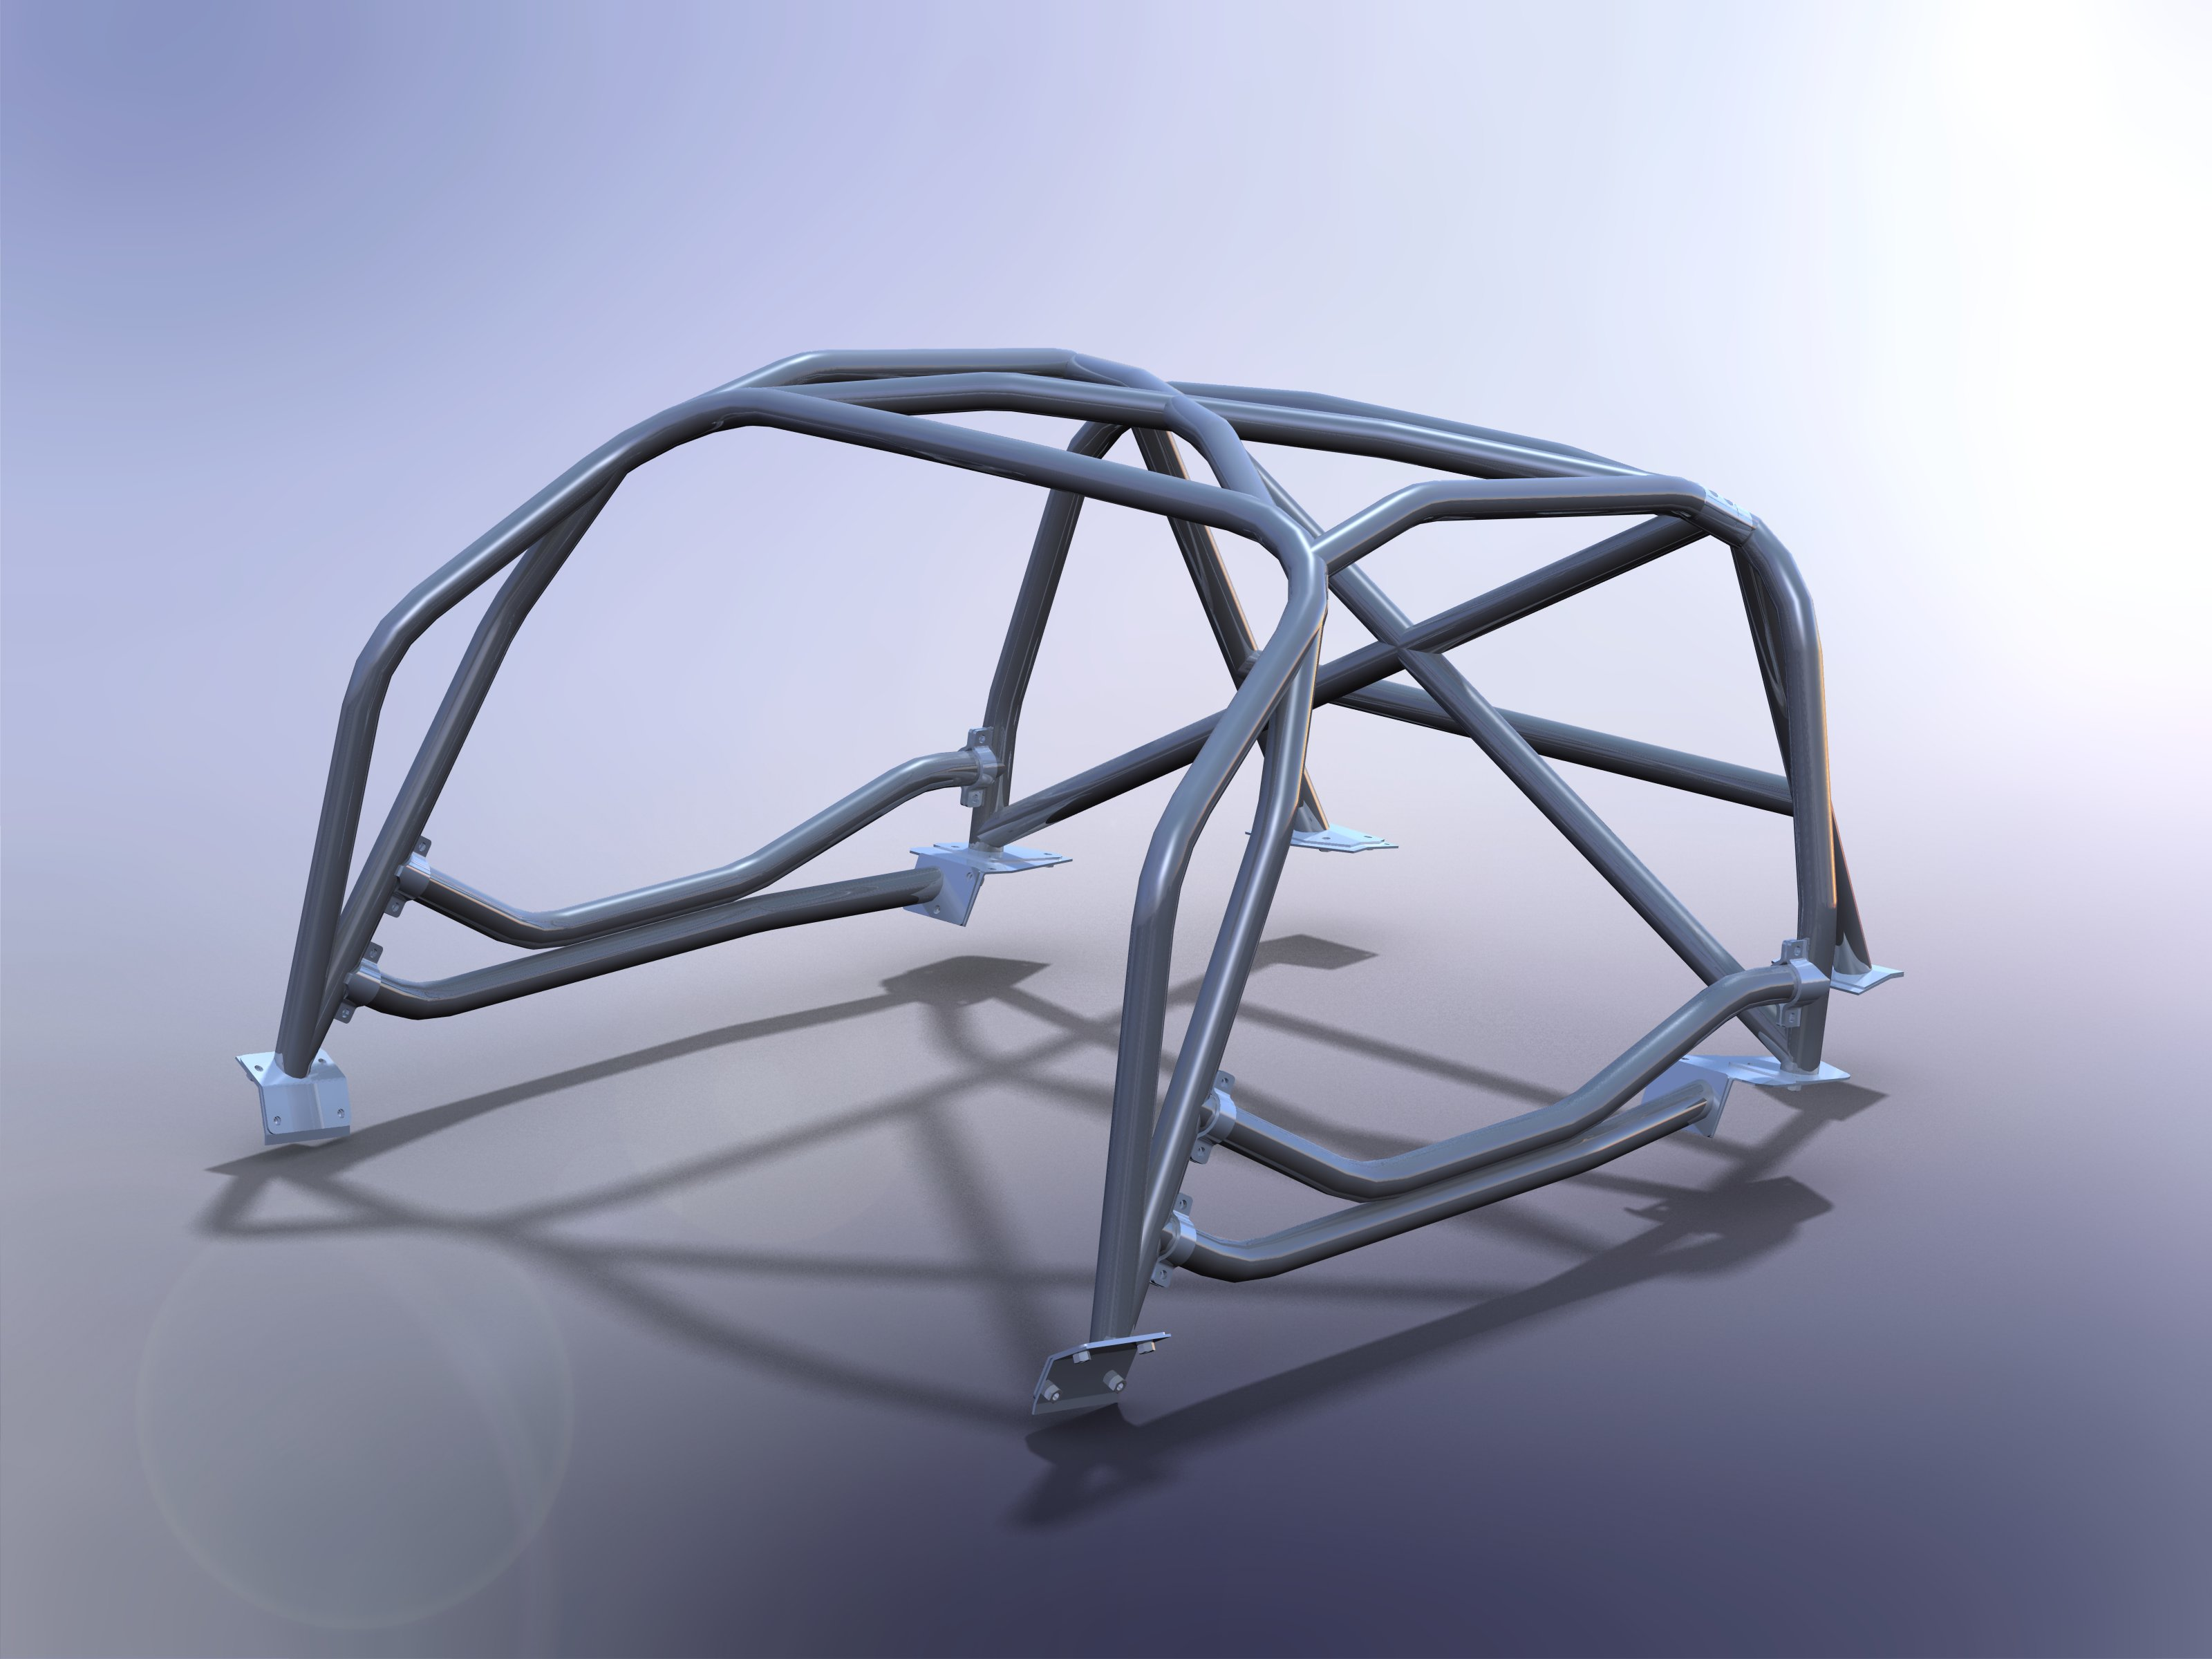 Technical Roll Cage Information | Safety Devices – Experts